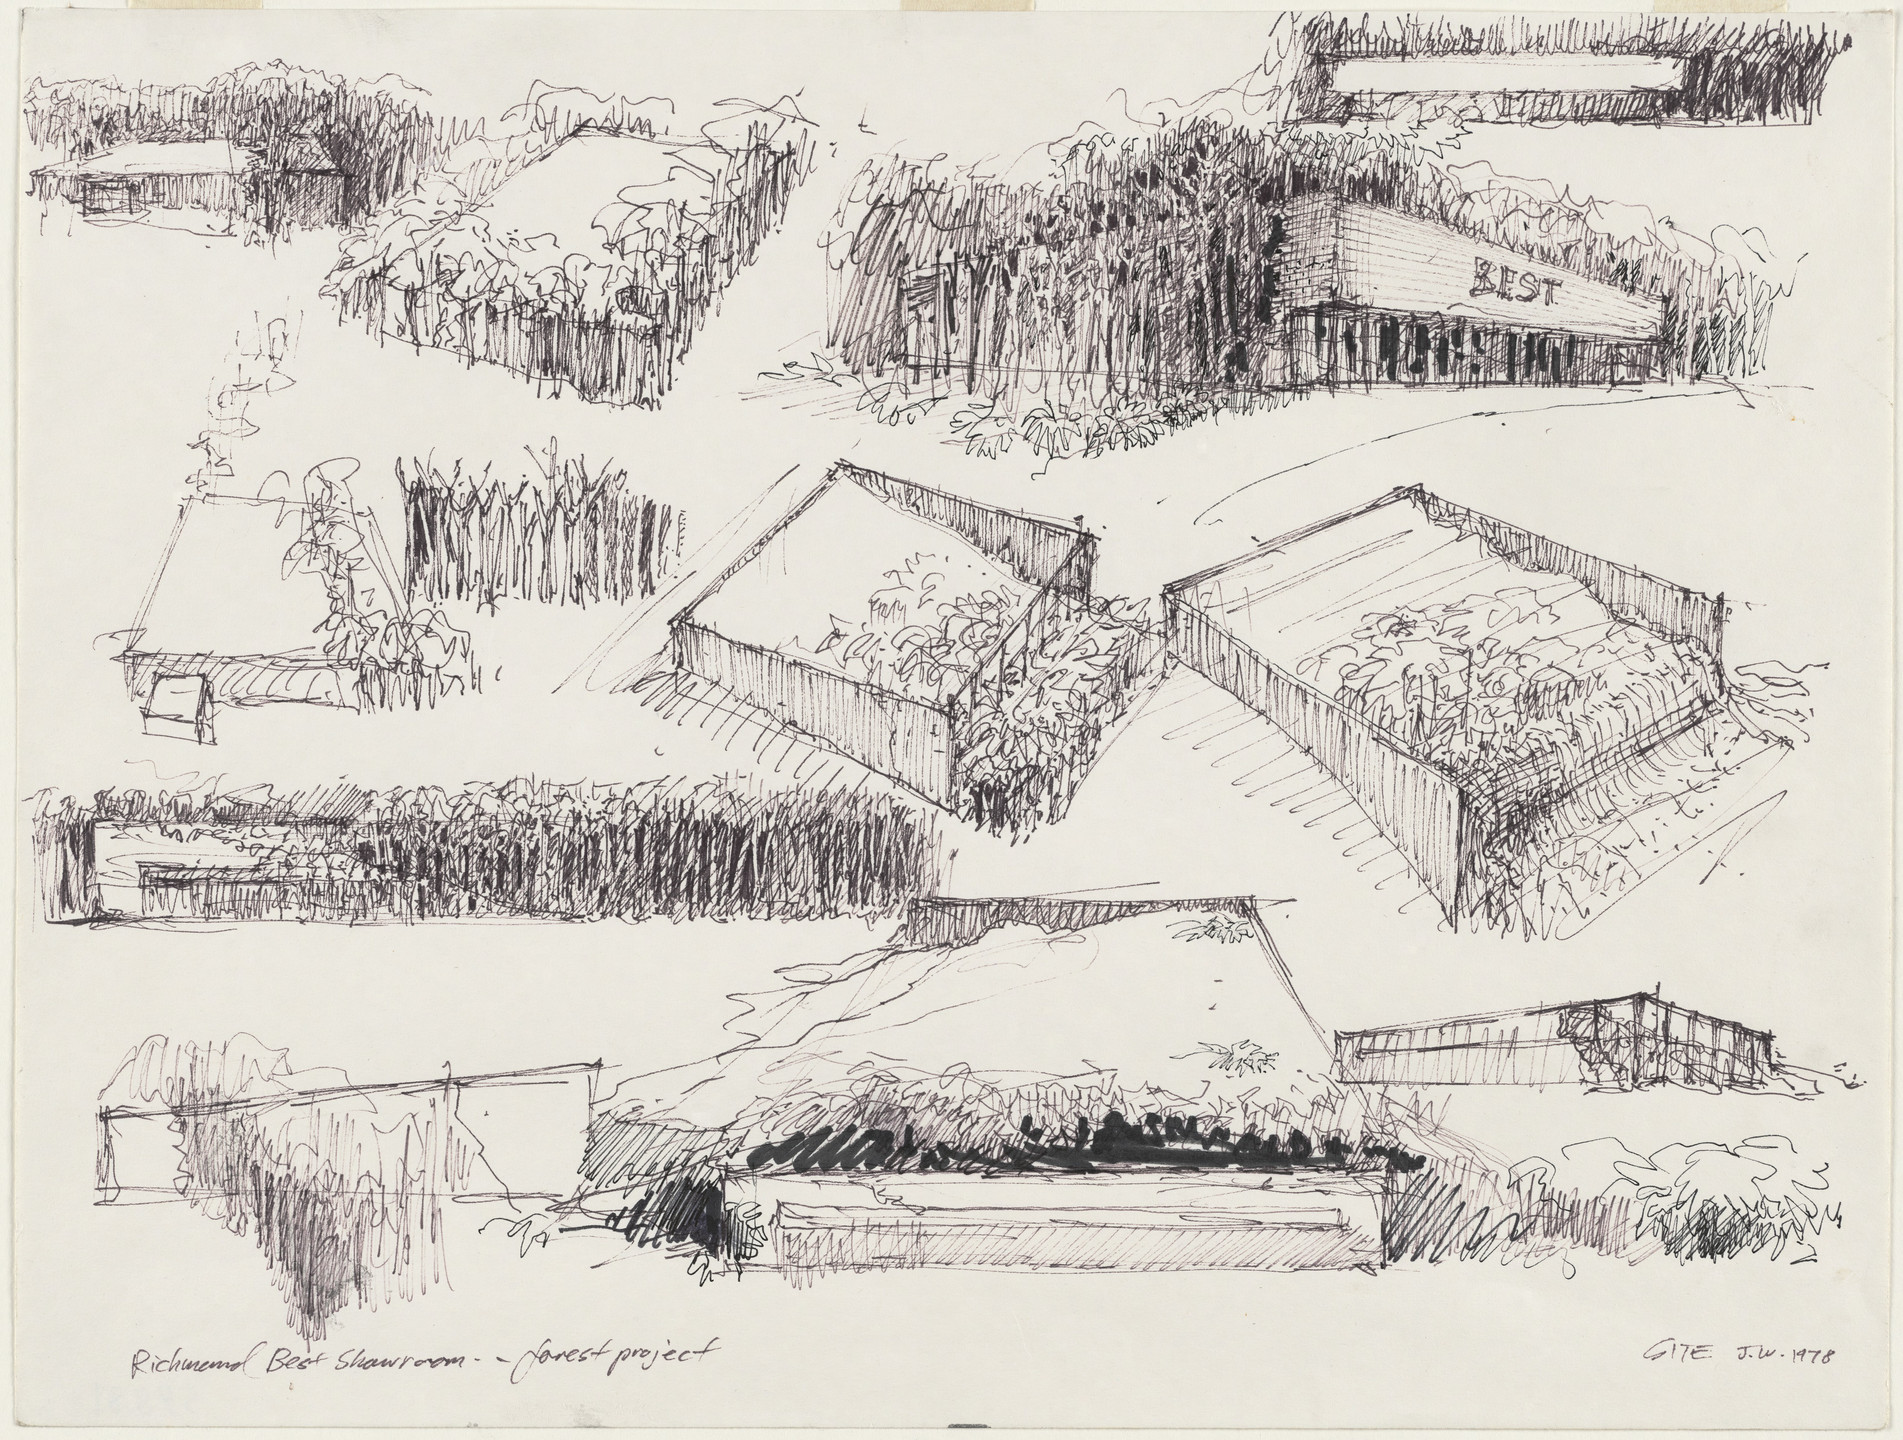 SITE, James Wines. Forest Building, Richmond, Virginia (Perspective). 1978